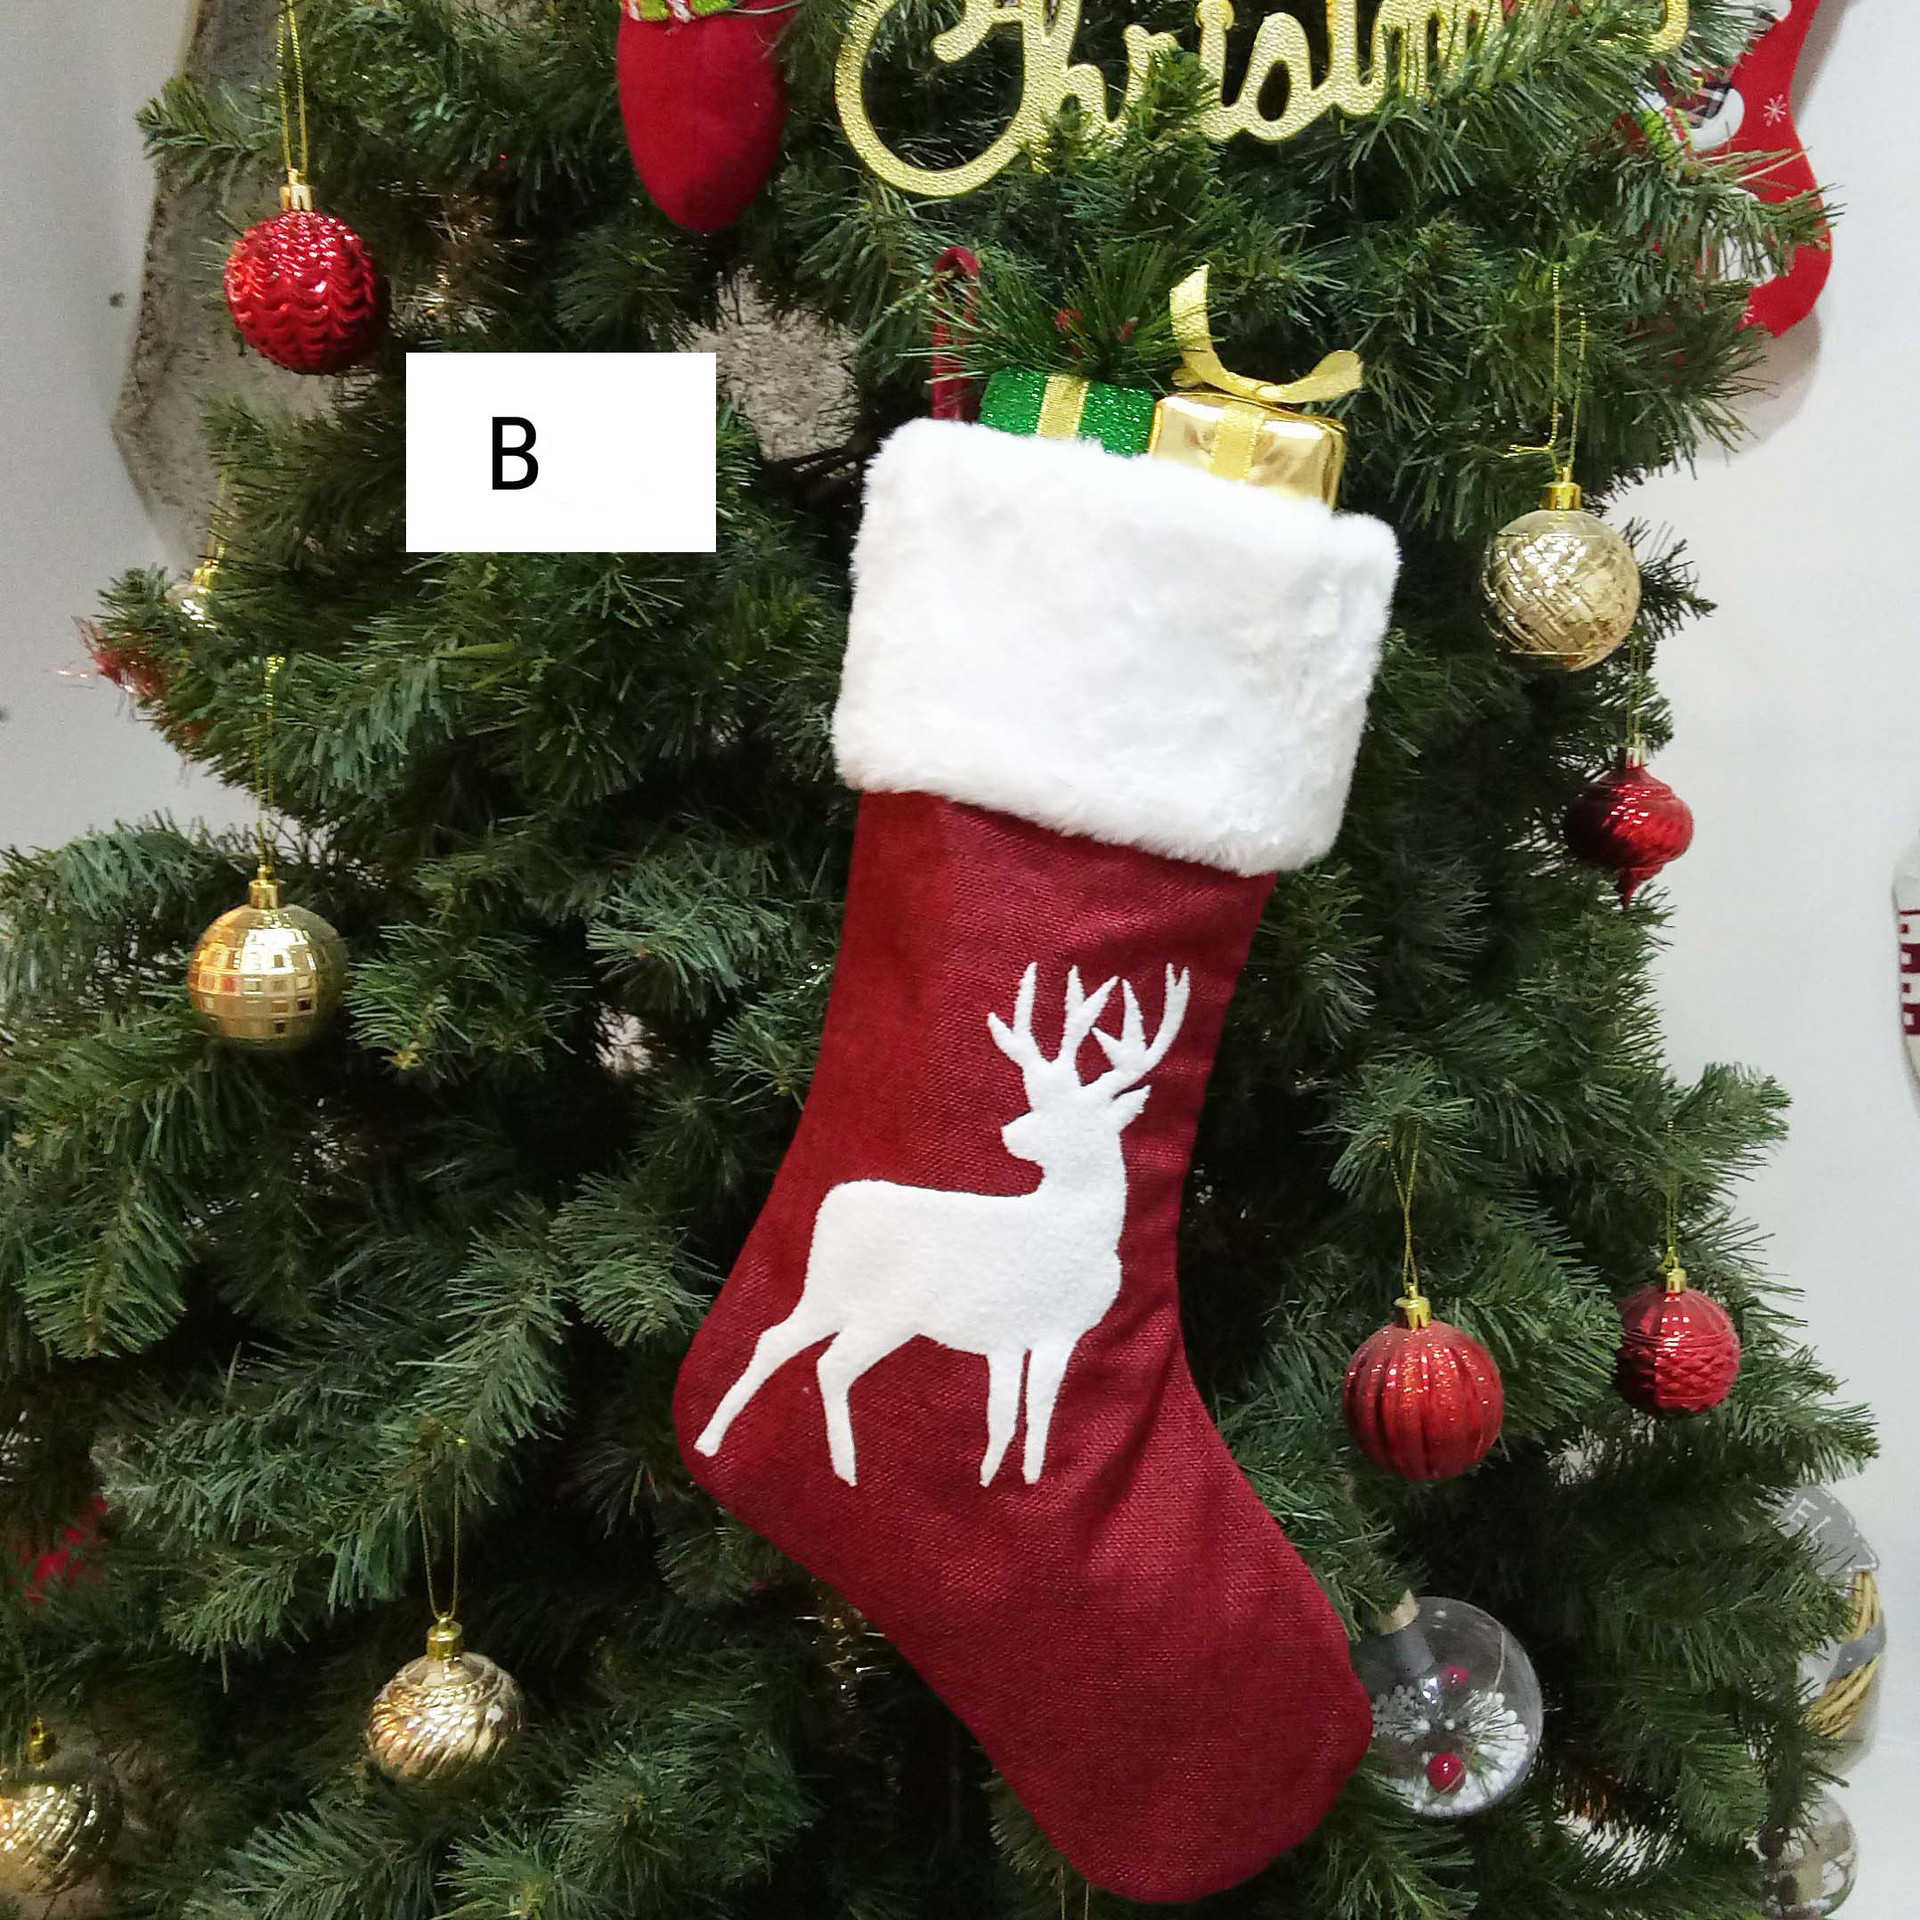 Christmas Stockings Gifts Christmas Tree Decorations Socks Hanging Ornaments Children S Candy Bags Gifts Christmas Decorations H